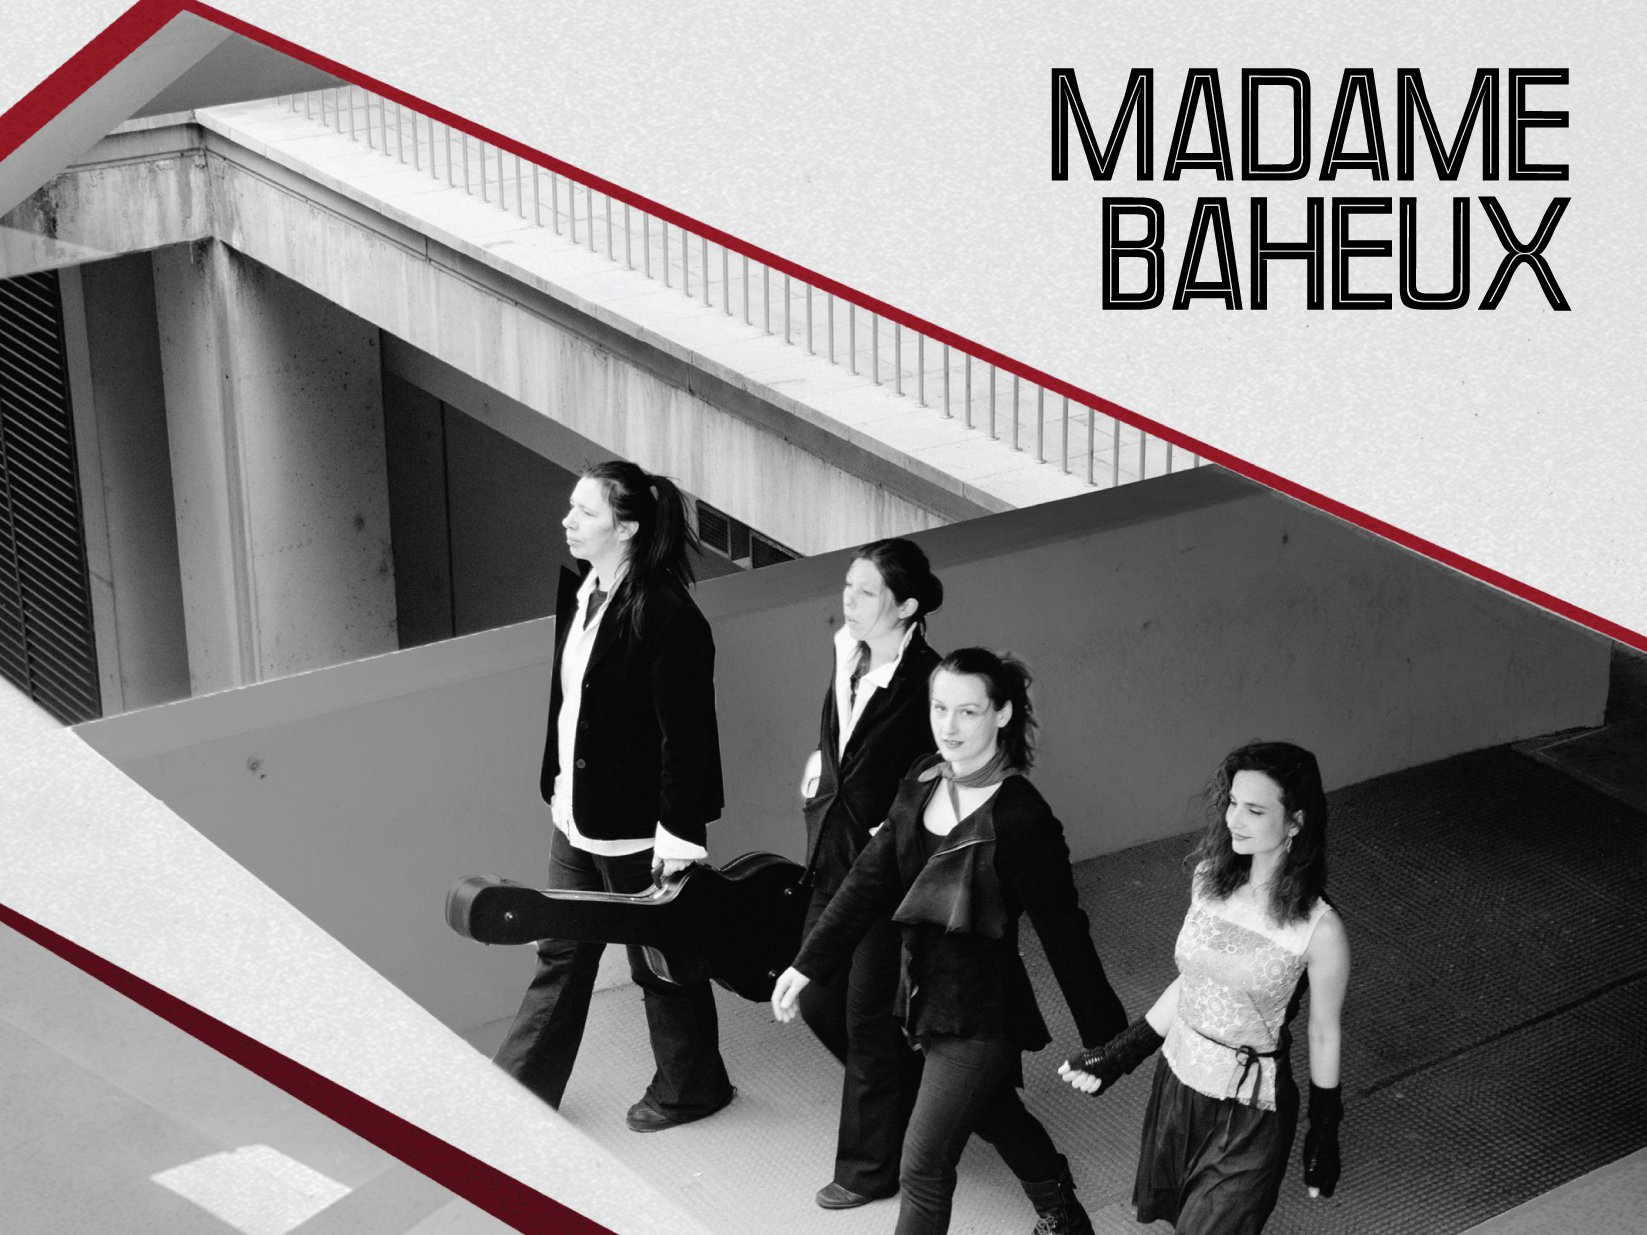 Image for Madame Baheux